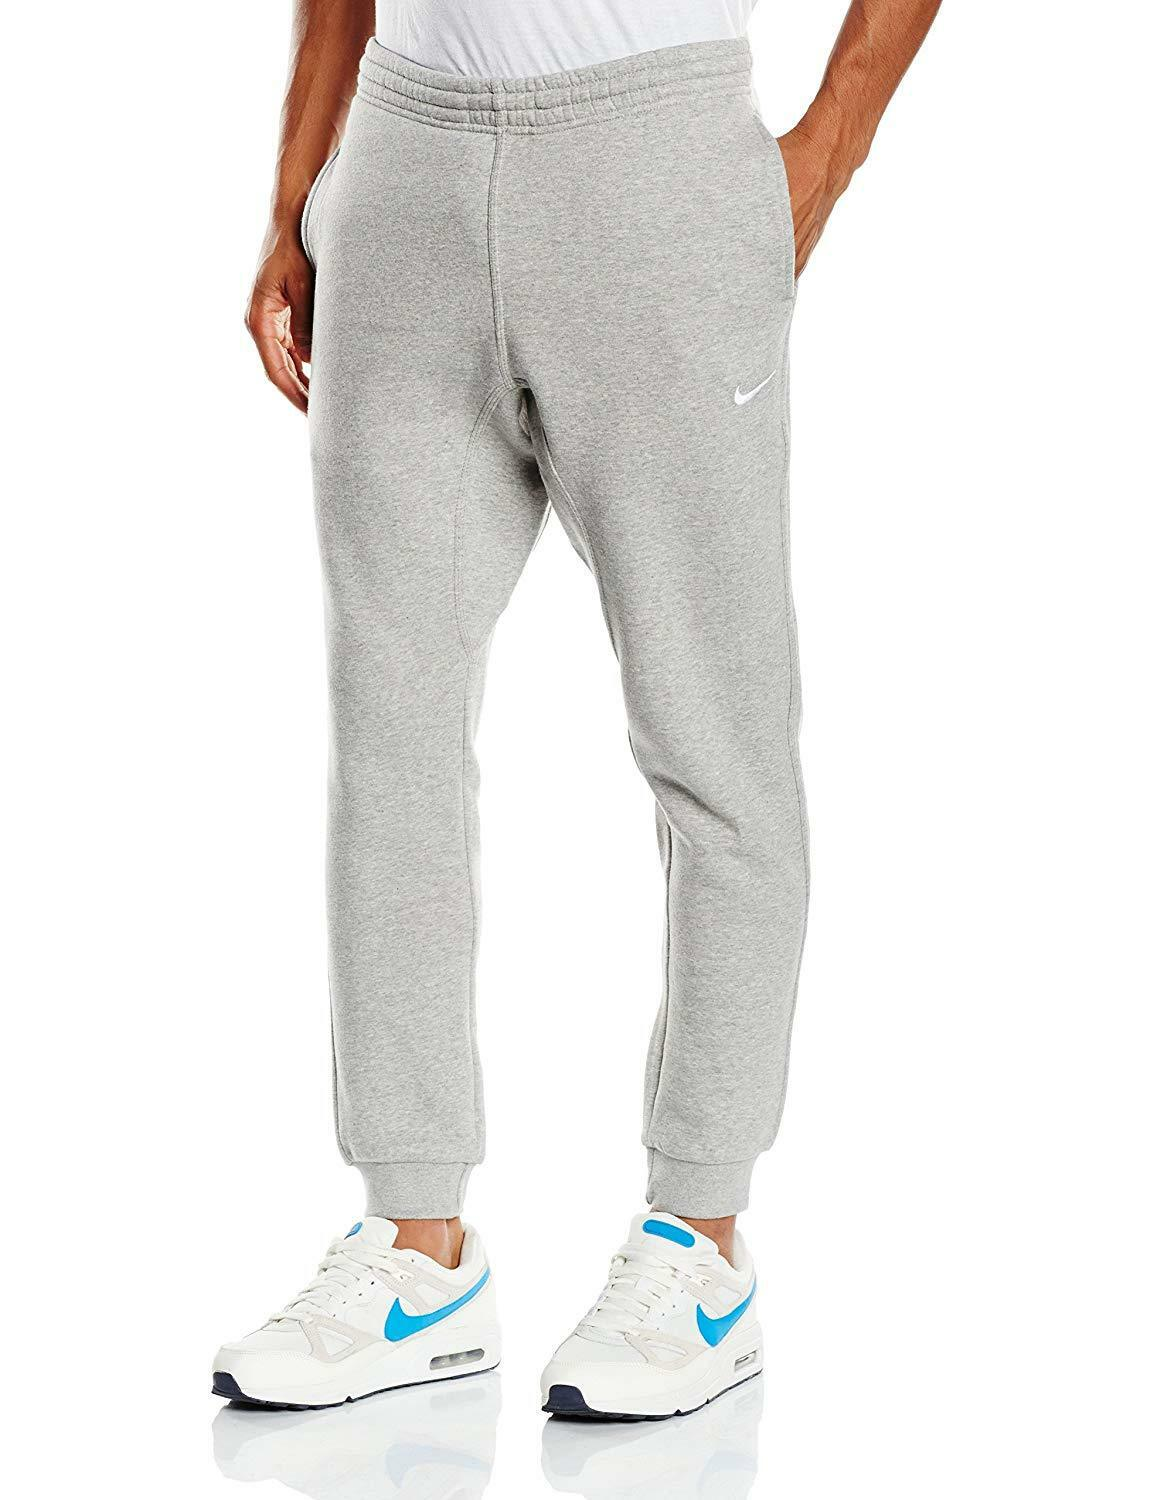 New With Tags Men's Nike Gym Muscle Club Fleece Jogger Pants Sweatpants Grey